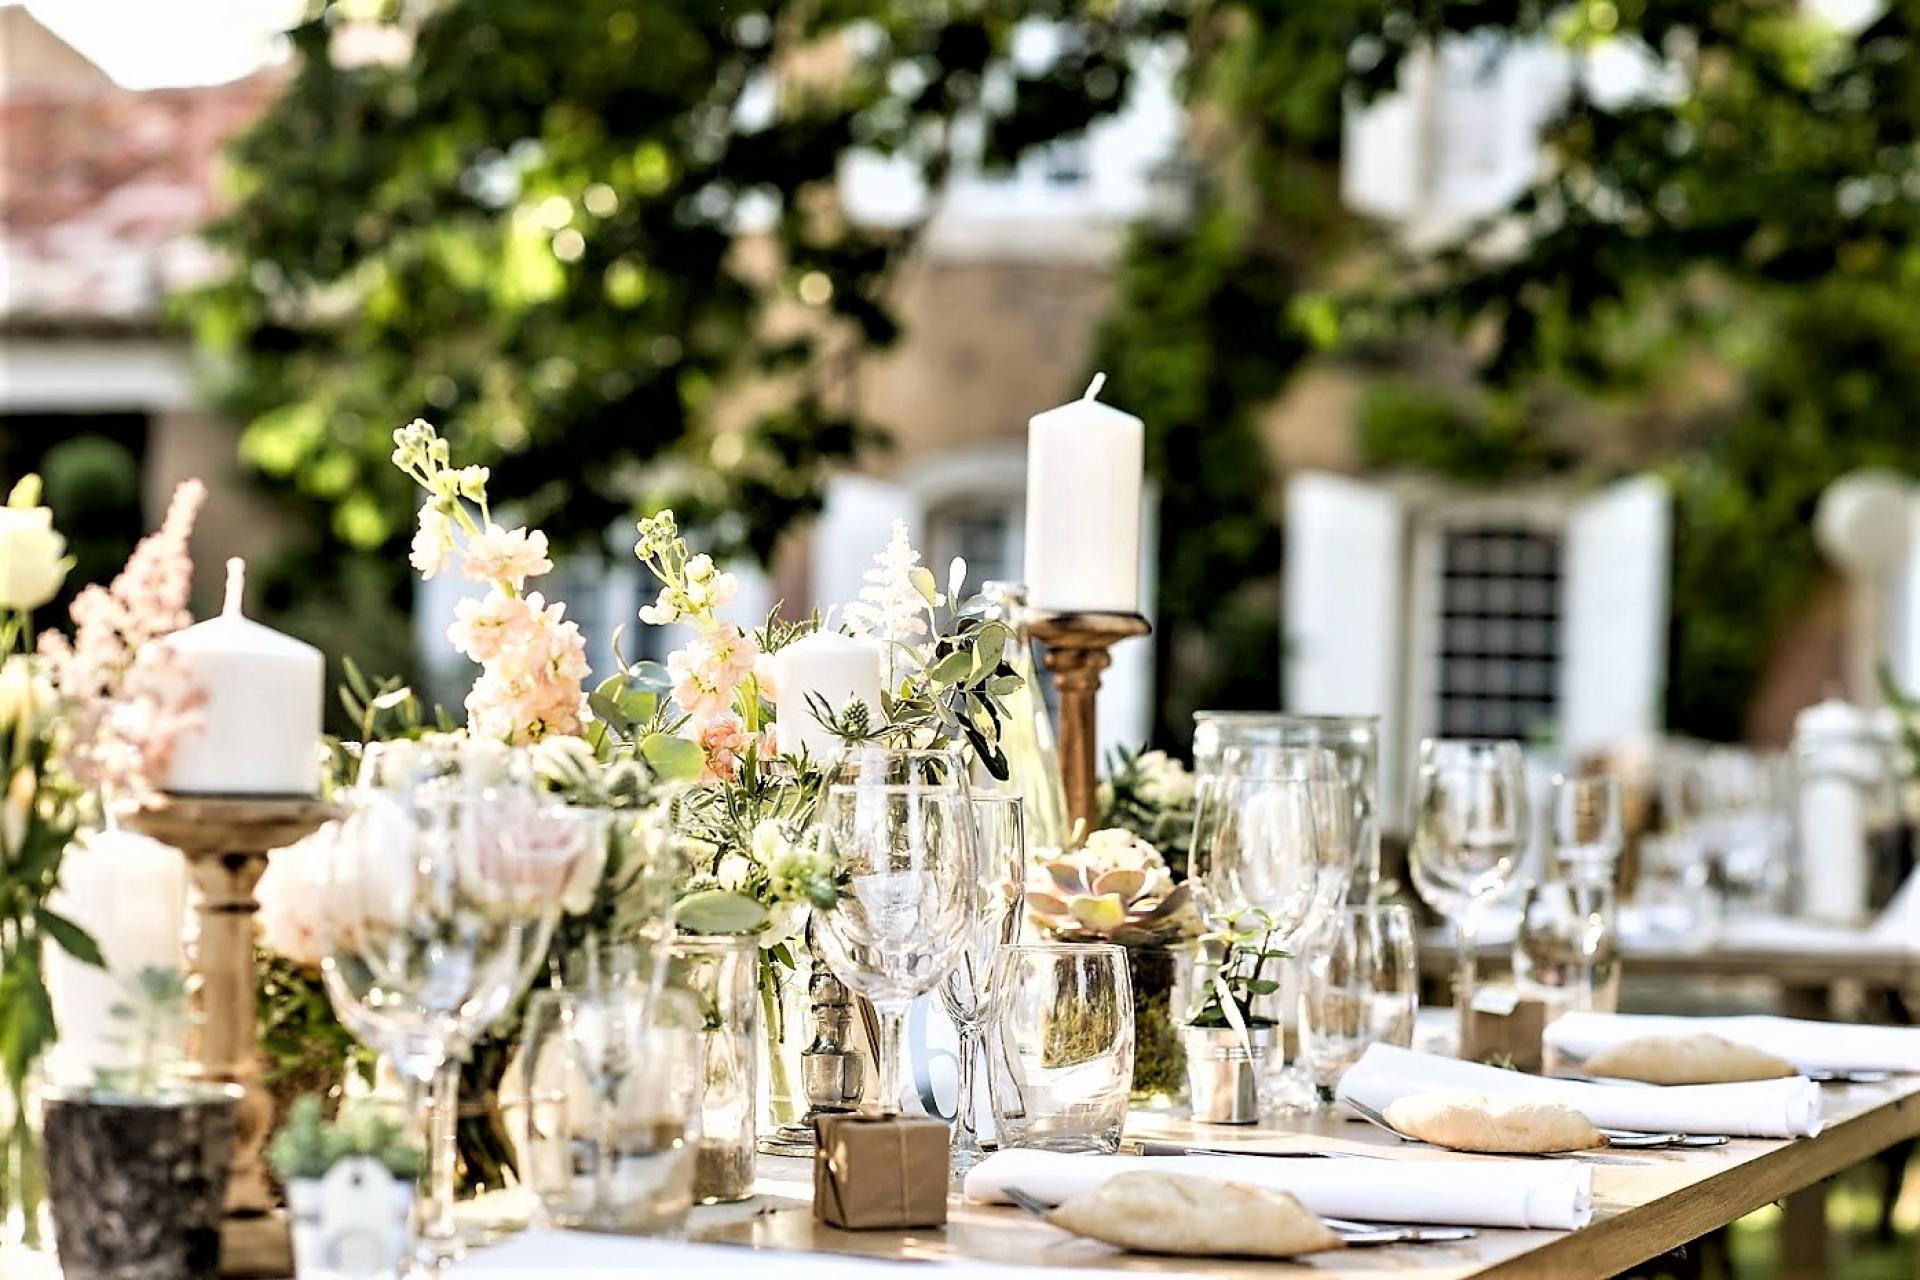 VILLA BASTIDE DE LA SORGUE, A PERFECT VENUE FOR WEDDINGS